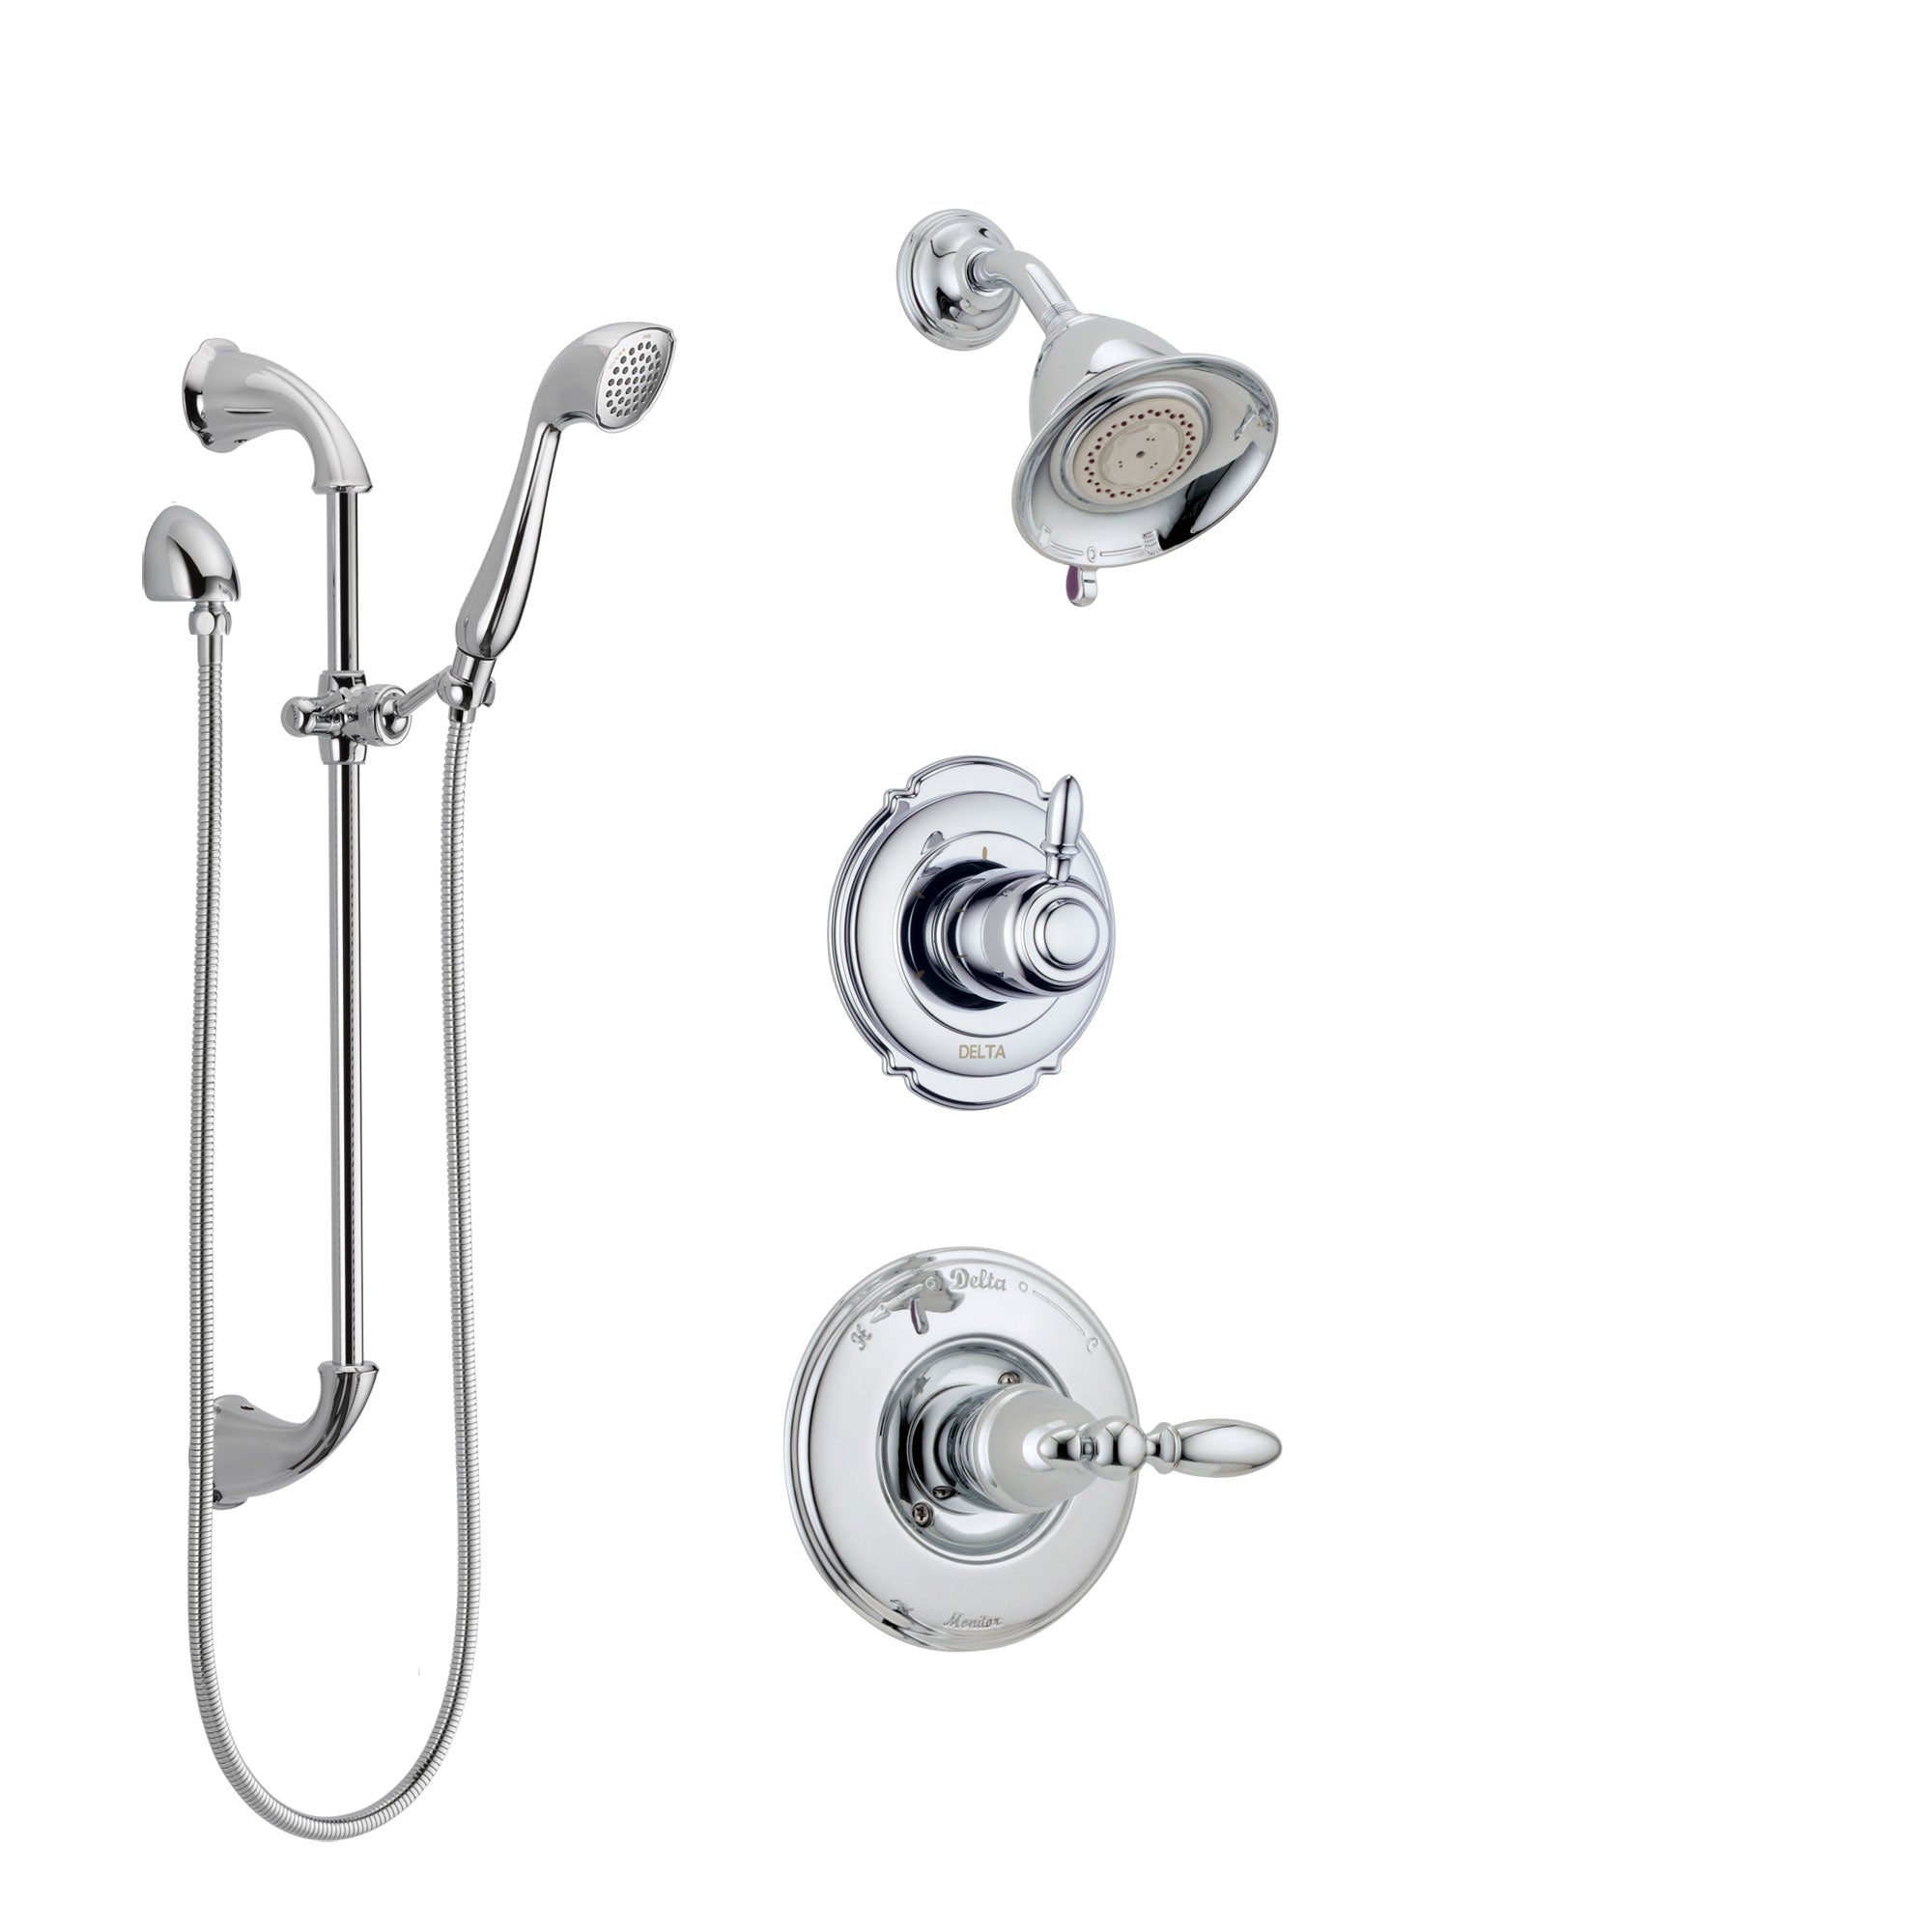 Delta Victorian Chrome Finish Shower System with Control Handle, 3-Setting Diverter, Showerhead, and Hand Shower with Slidebar SS142554